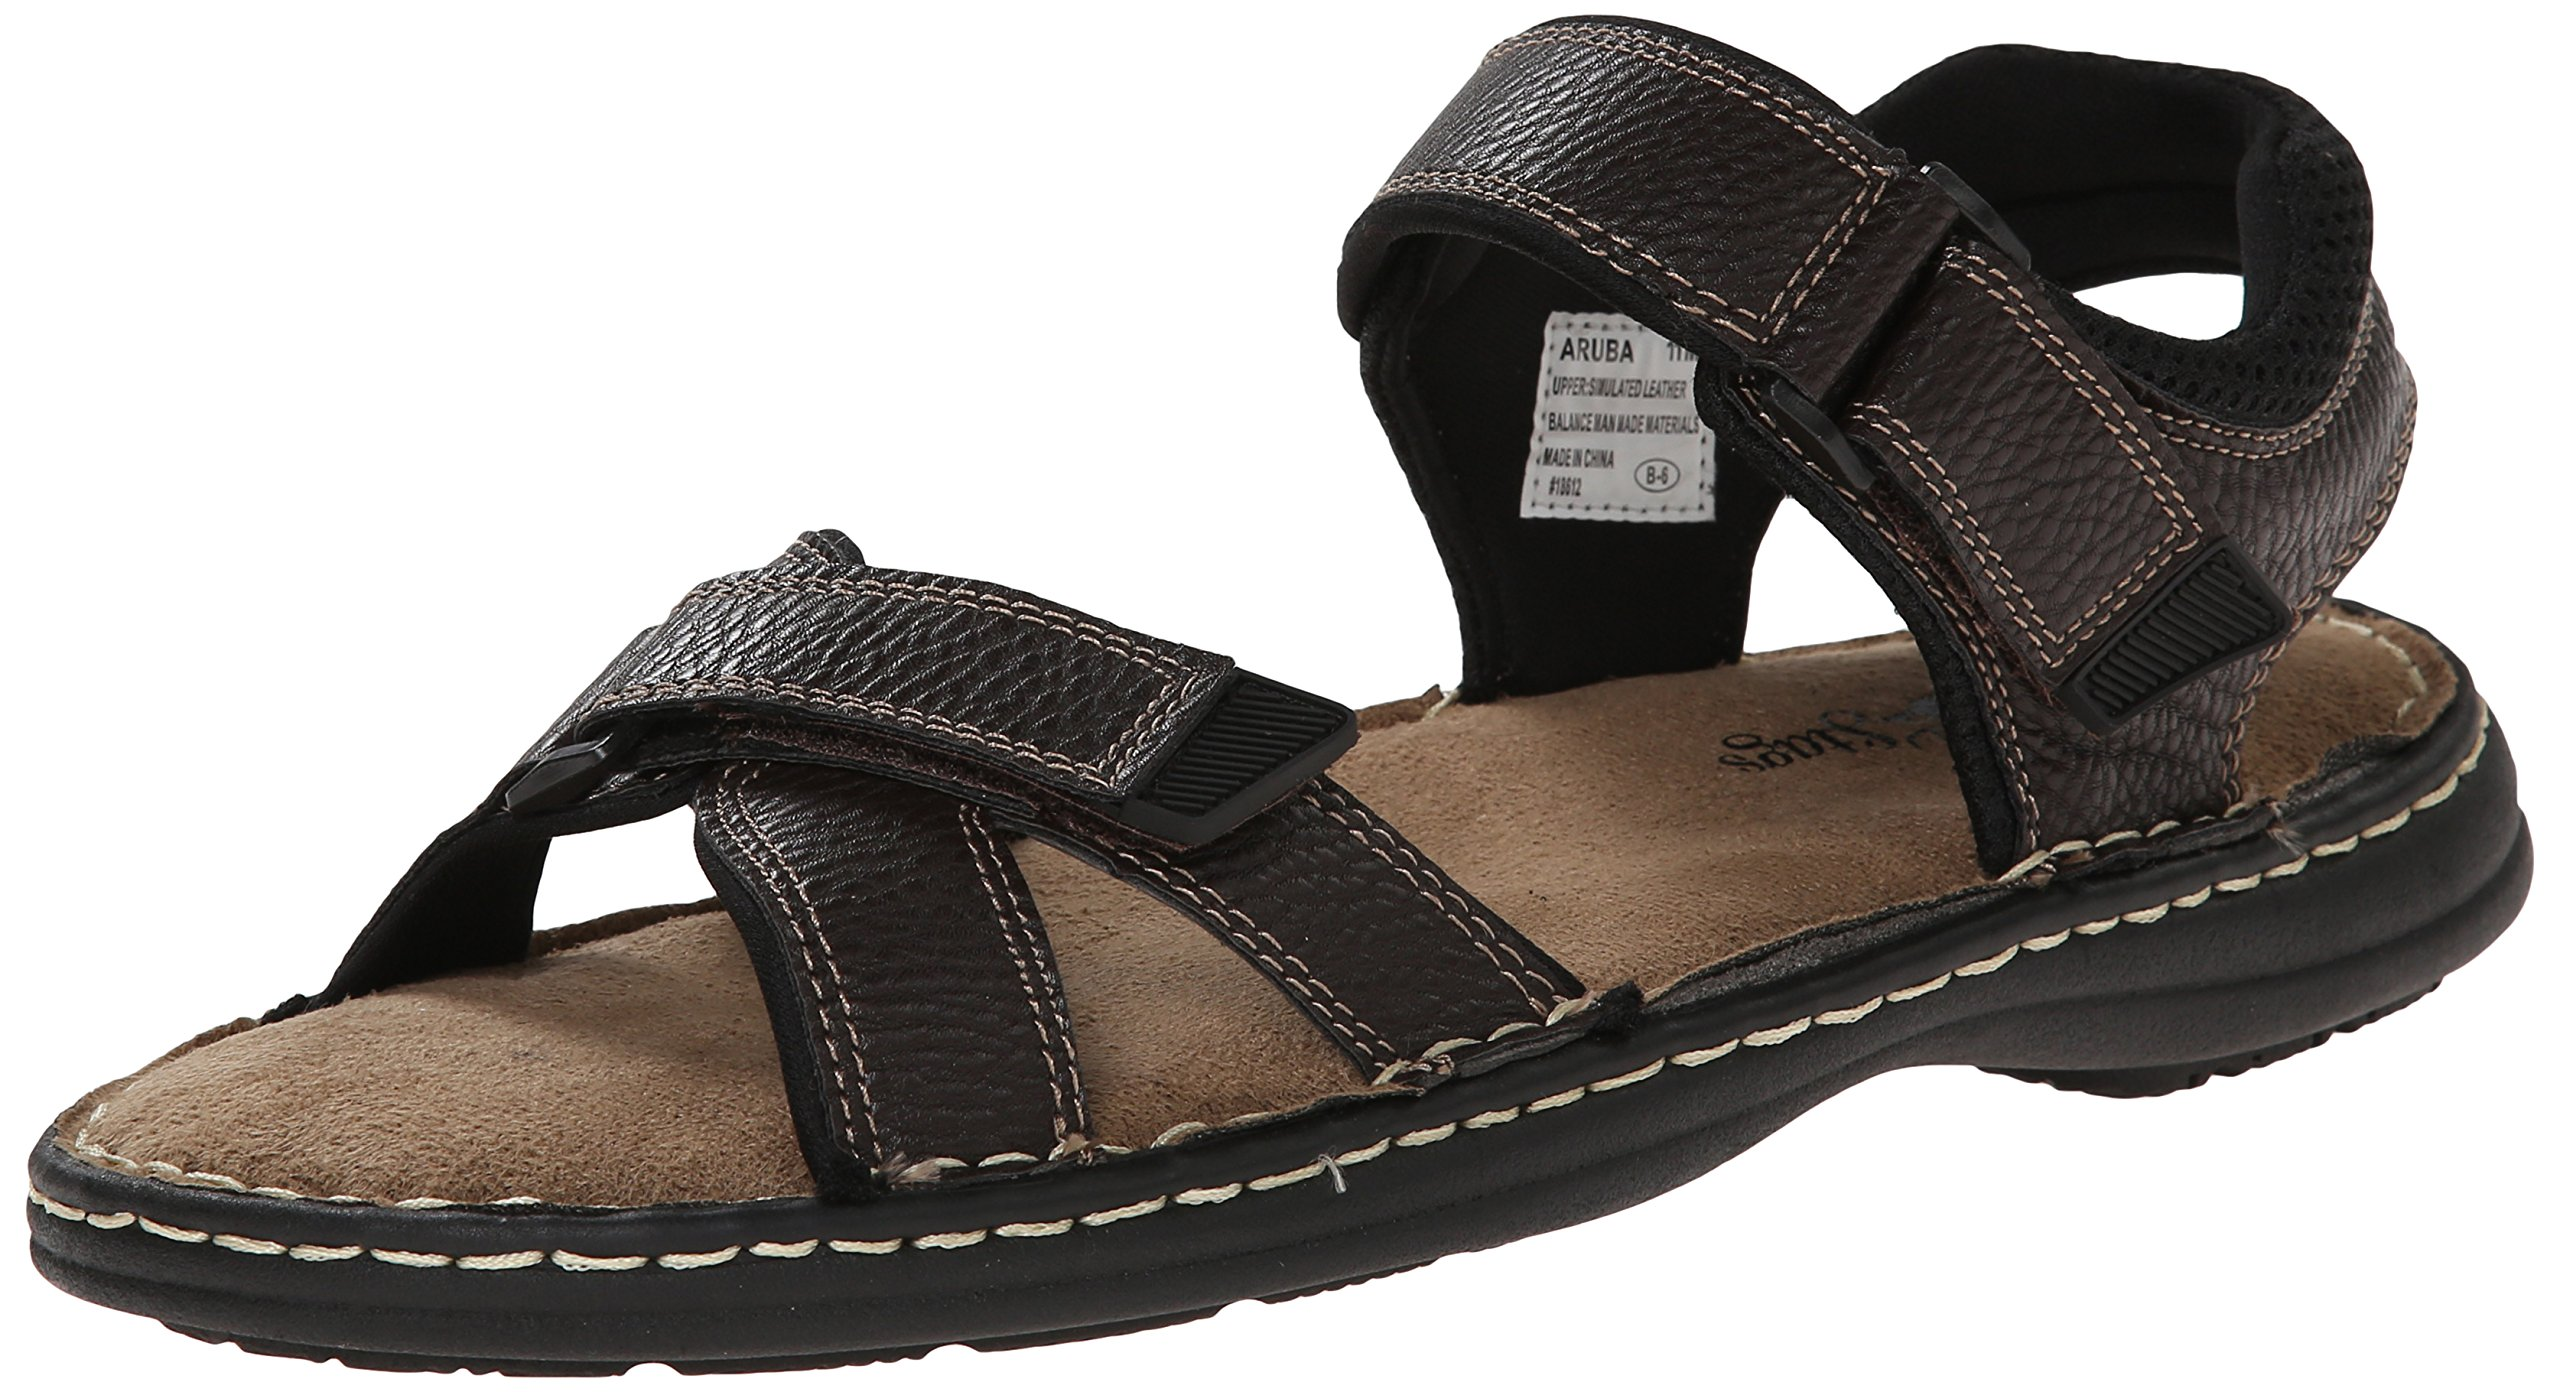 Deer Stags Men's Aruba Fisherman Sandal, Dark Brown, 13 M US